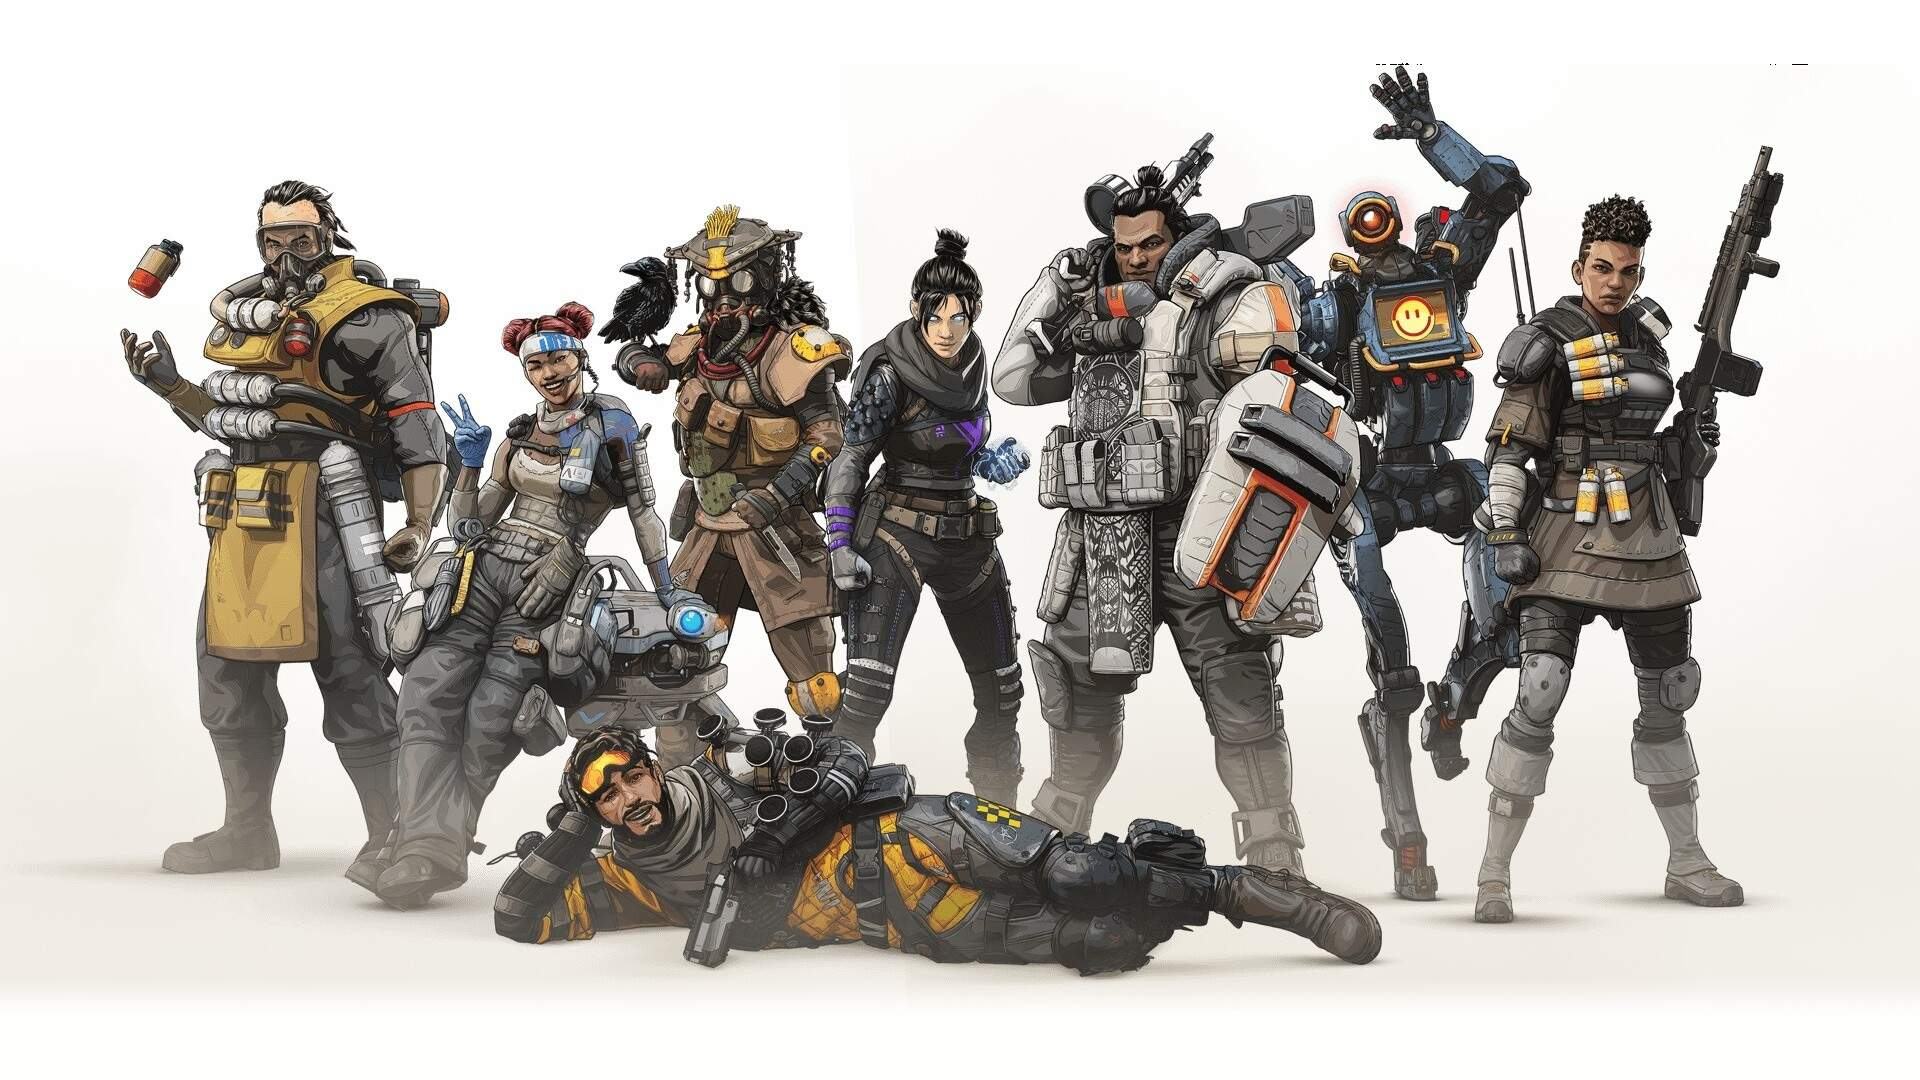 Another High-Level Apex Legends Developer is Departing Respawn Entertainment